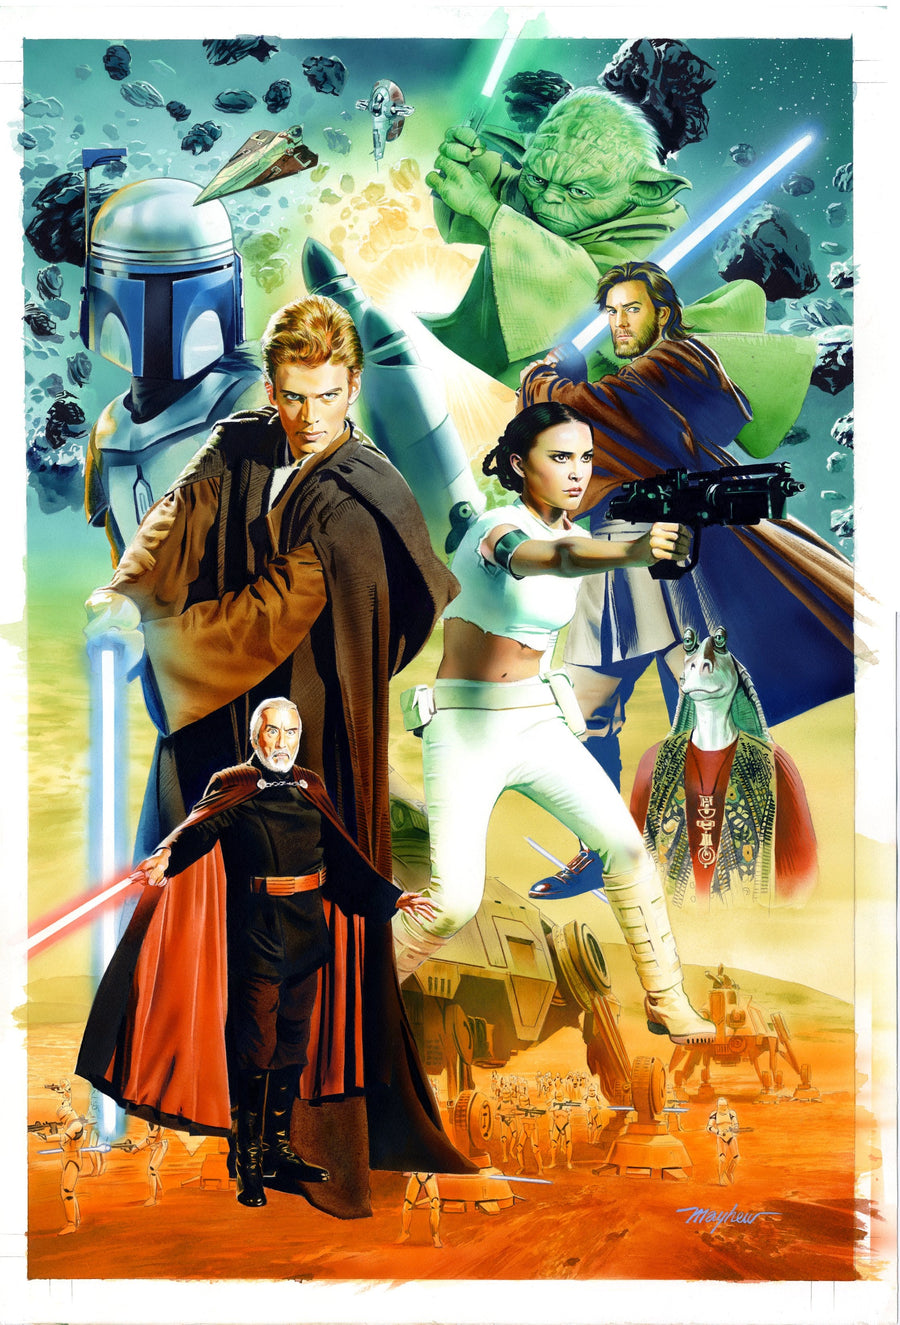 Mike Mayhew Original STAR WARS: ATTACK OF THE CLONES Hardcover Cover Painting